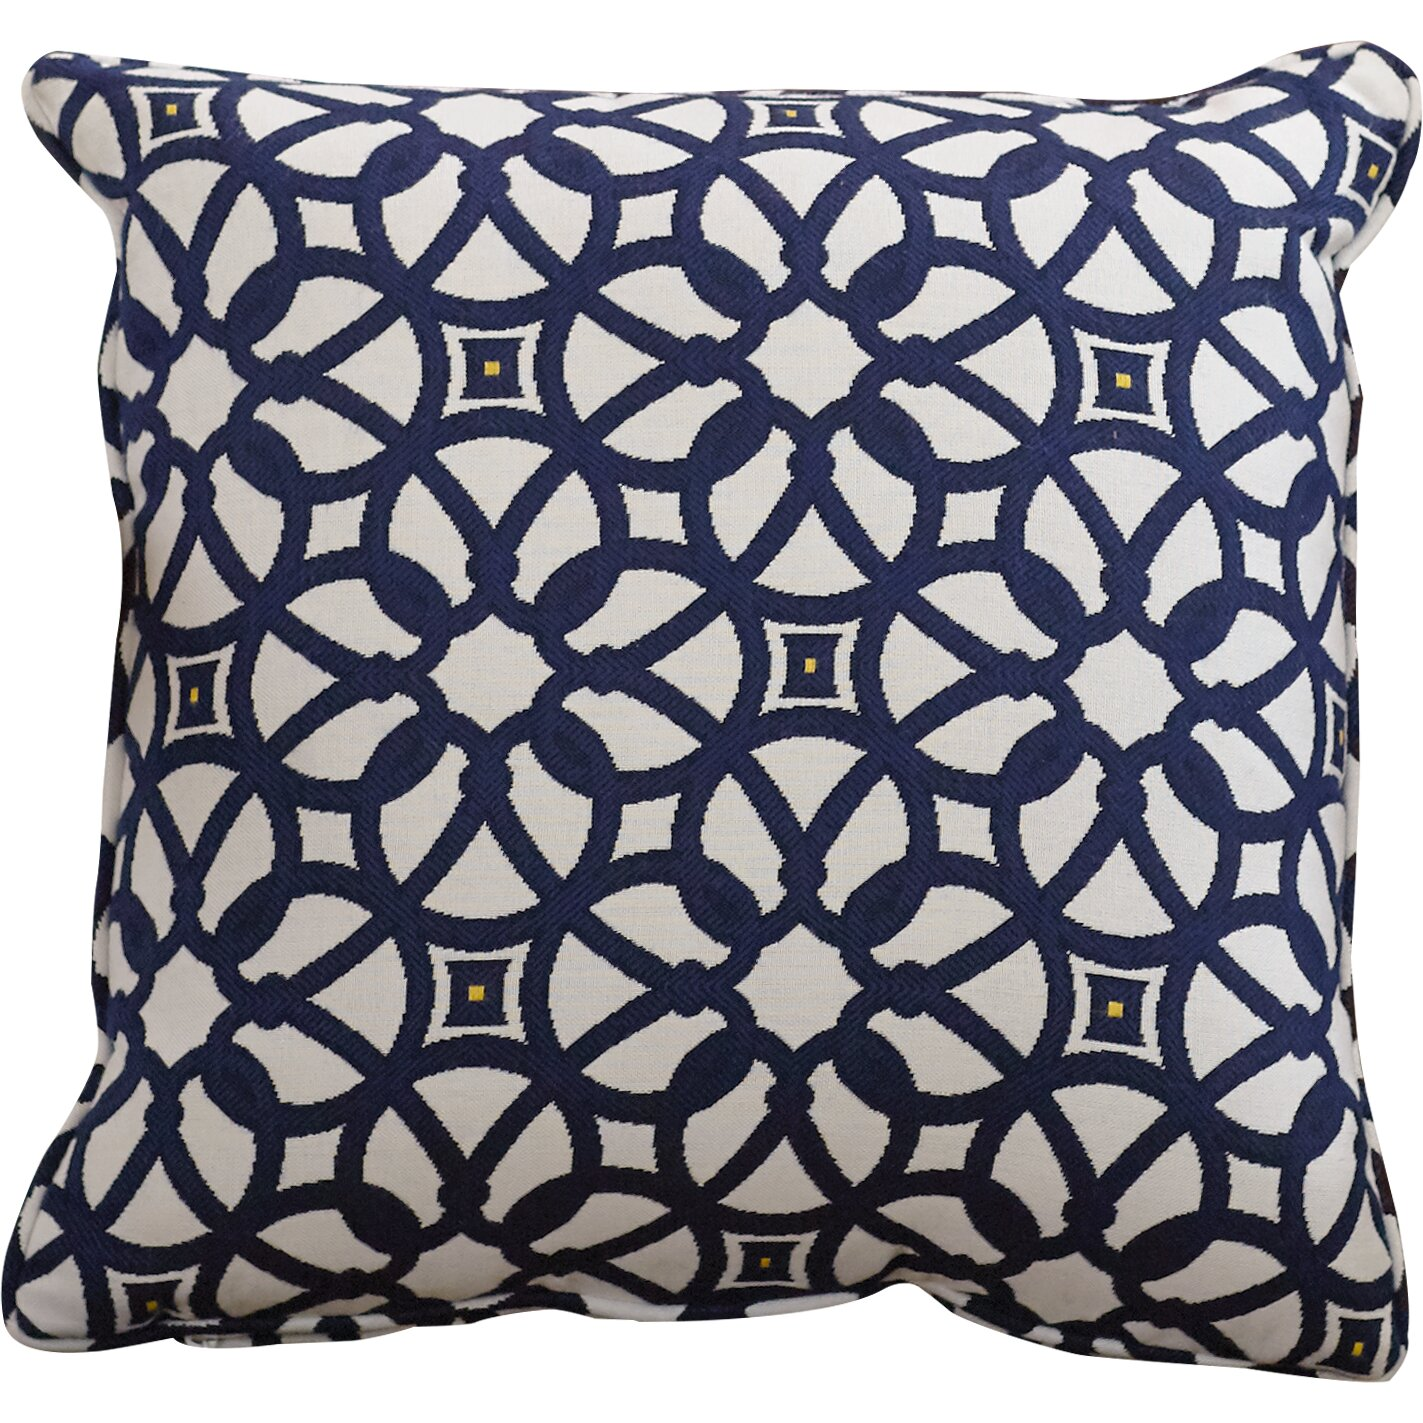 Decorative Pillow Wayfair : Wayfair Custom Outdoor Cushions Outdoor Sunbrella Throw Pillow & Reviews Wayfair